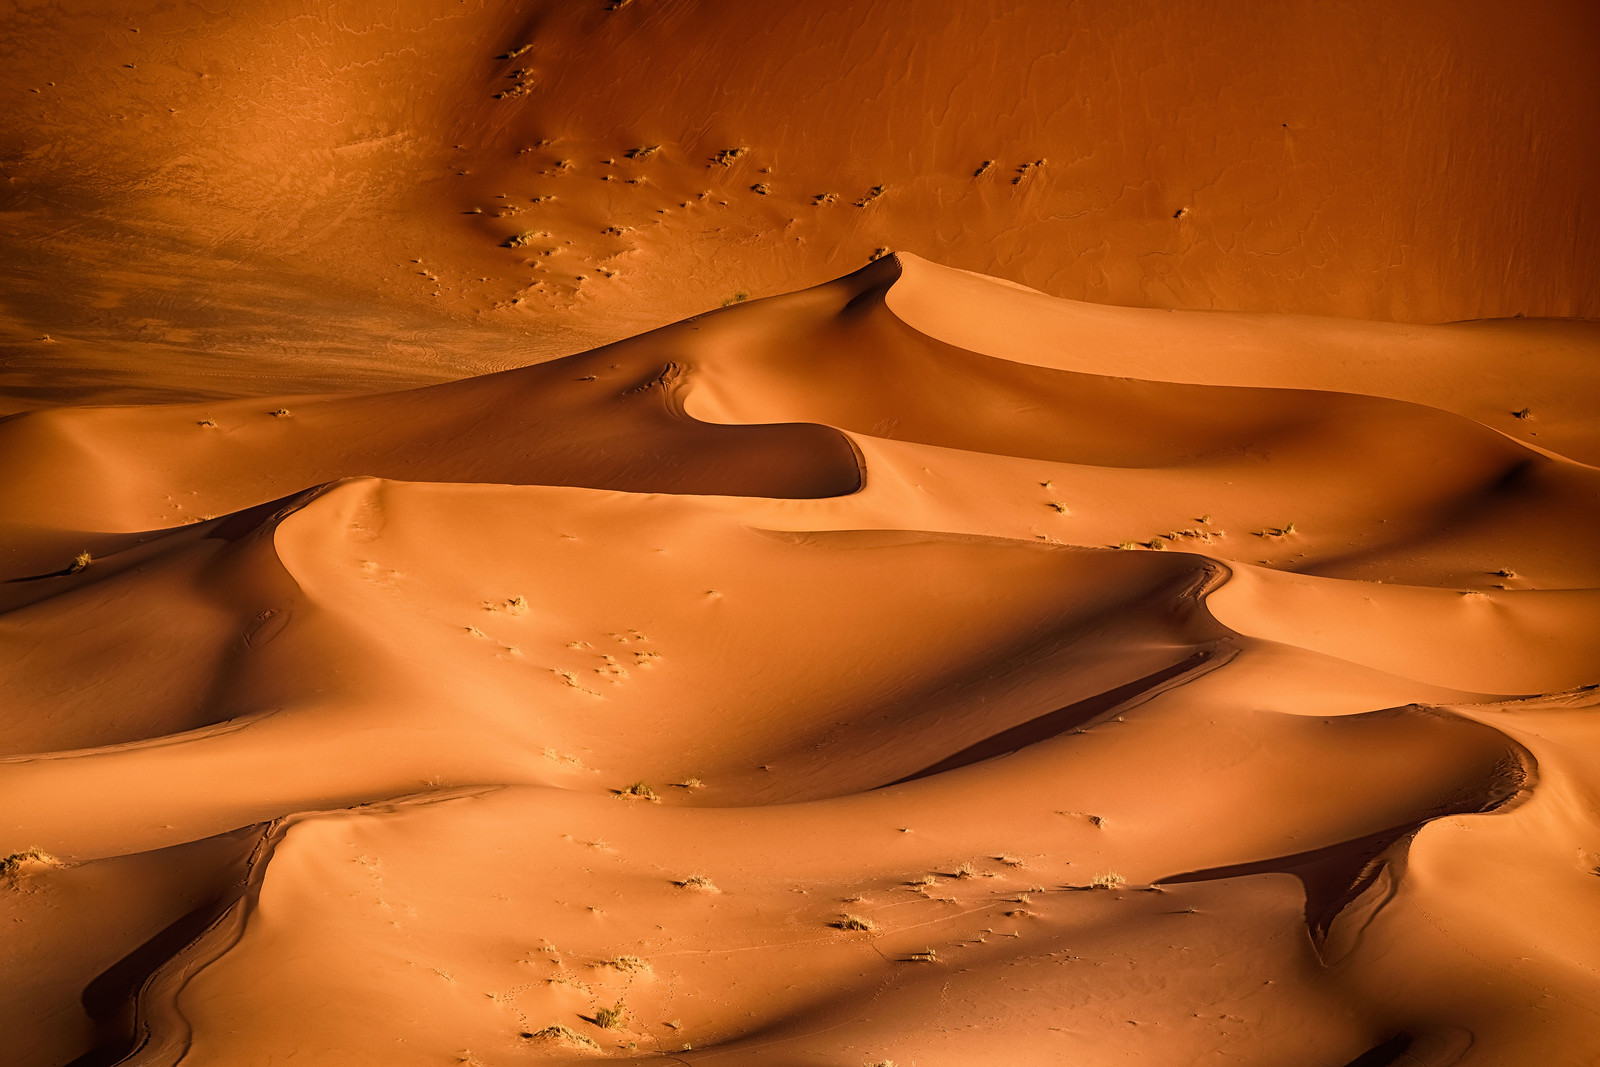 Erg Chebbi Sand Dunes in the Sahara Desert of Morocco - copyright Andy Yee